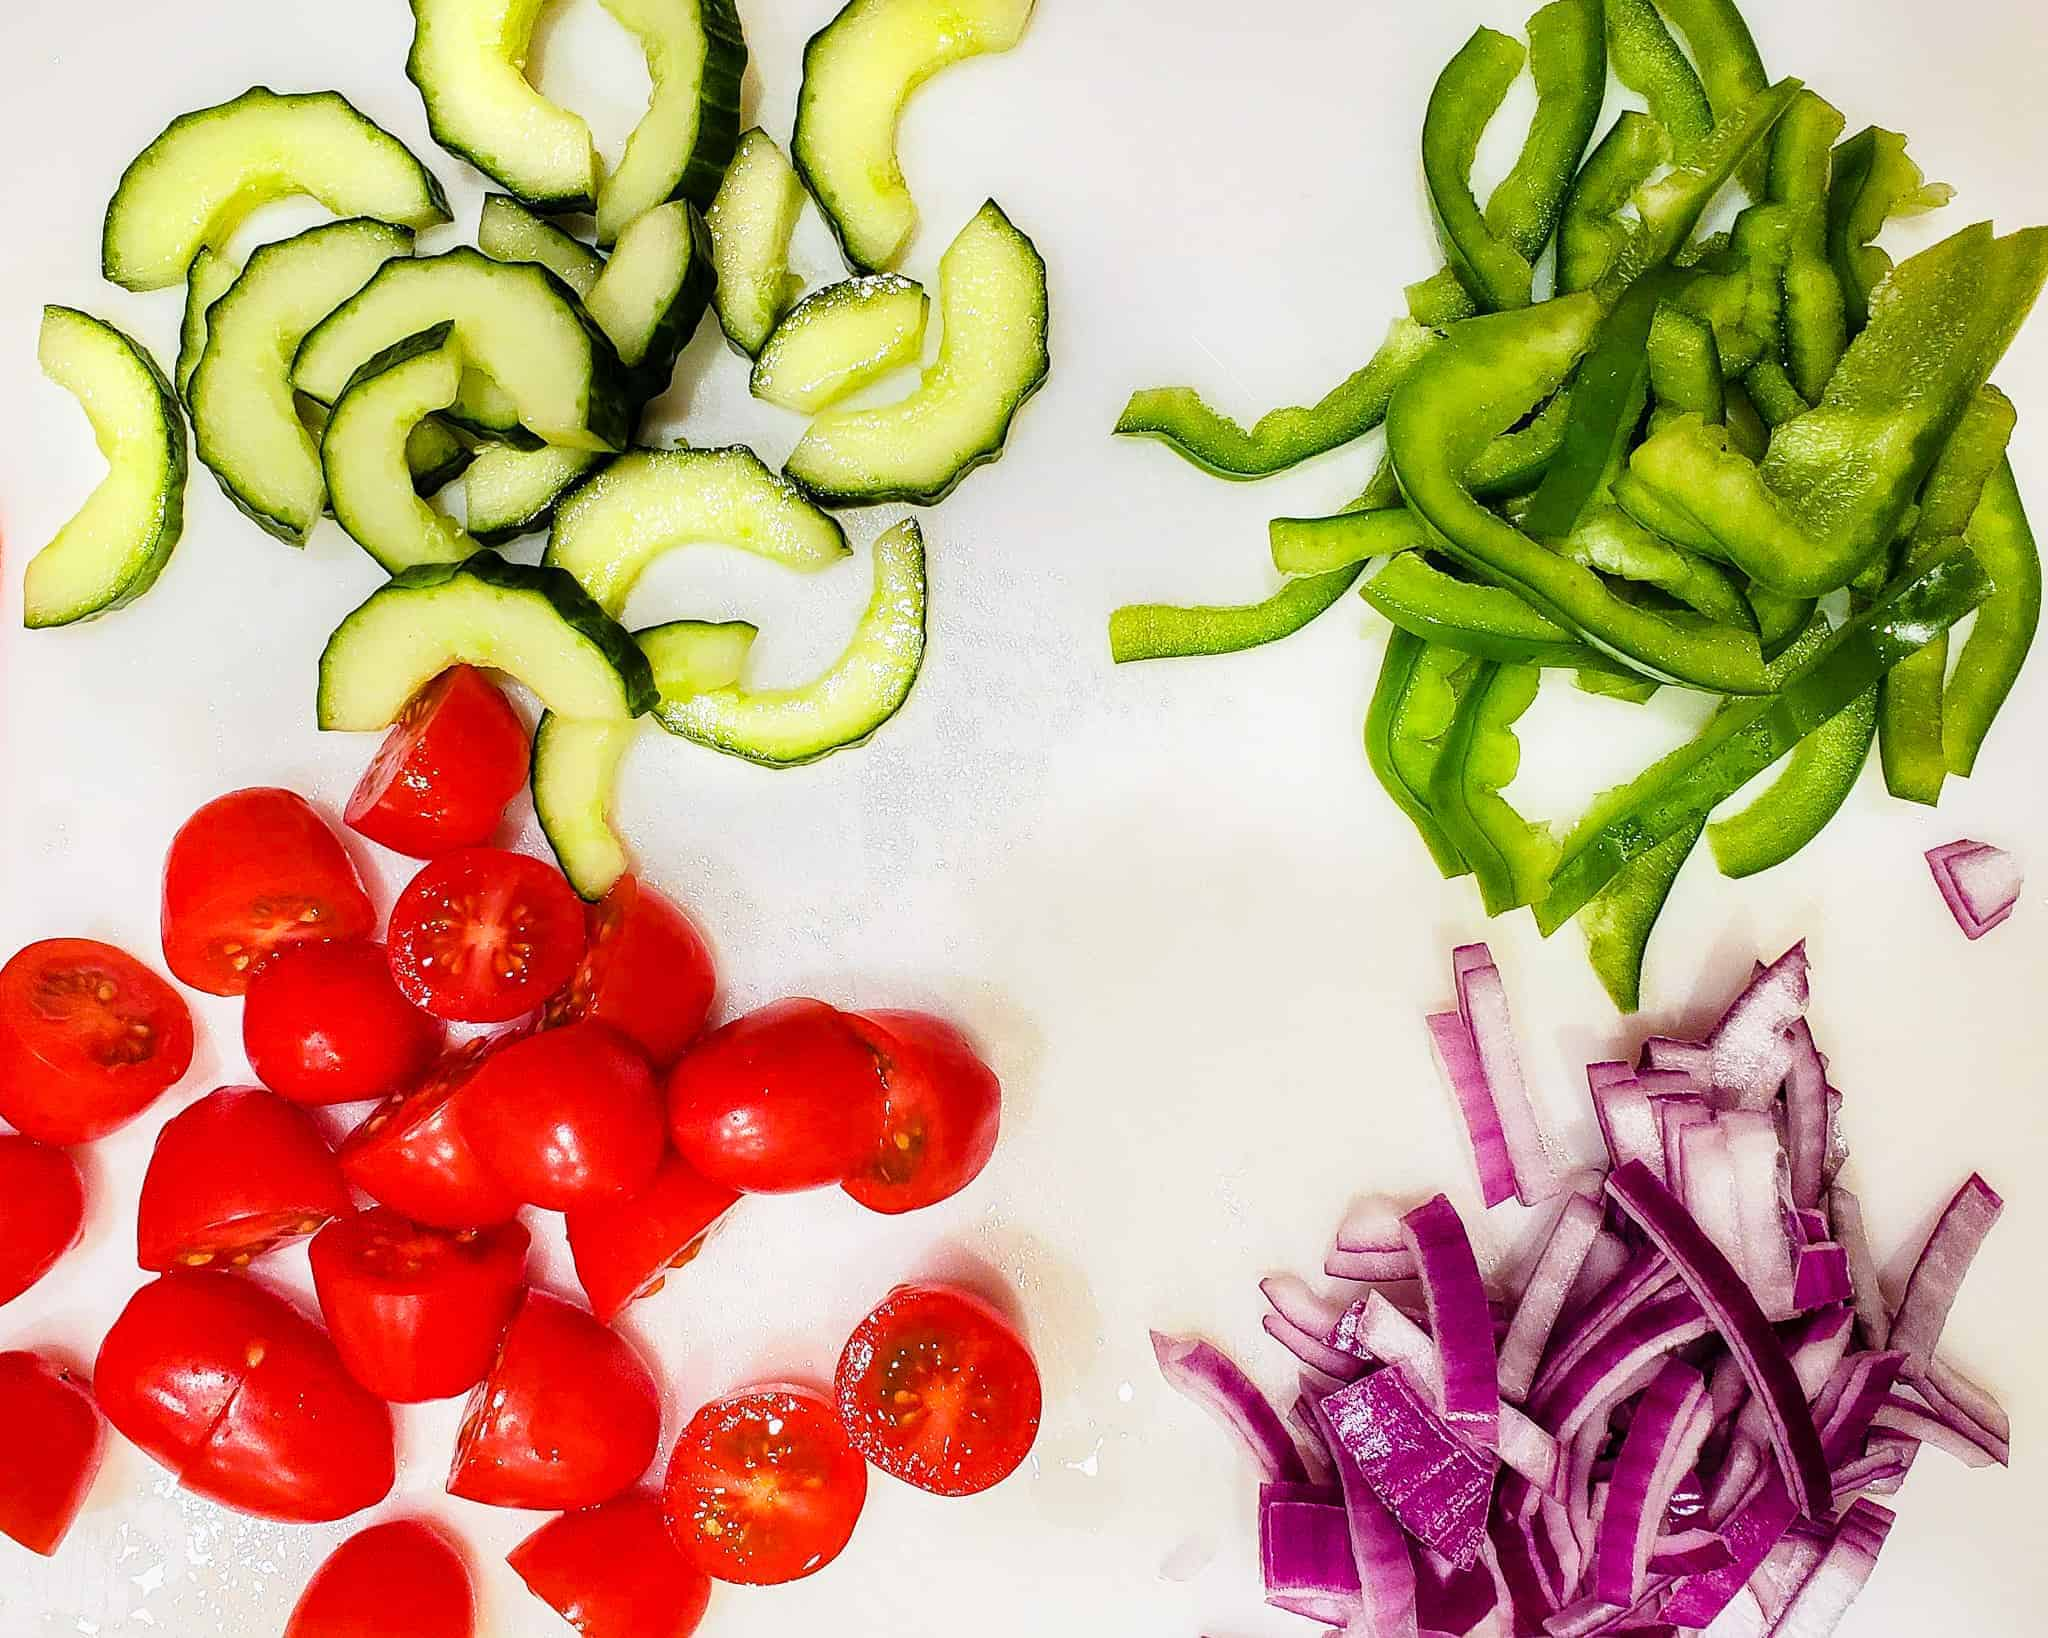 Sliced cucumber, green pepper, tomatoes, and red onion shown on a cutting board.